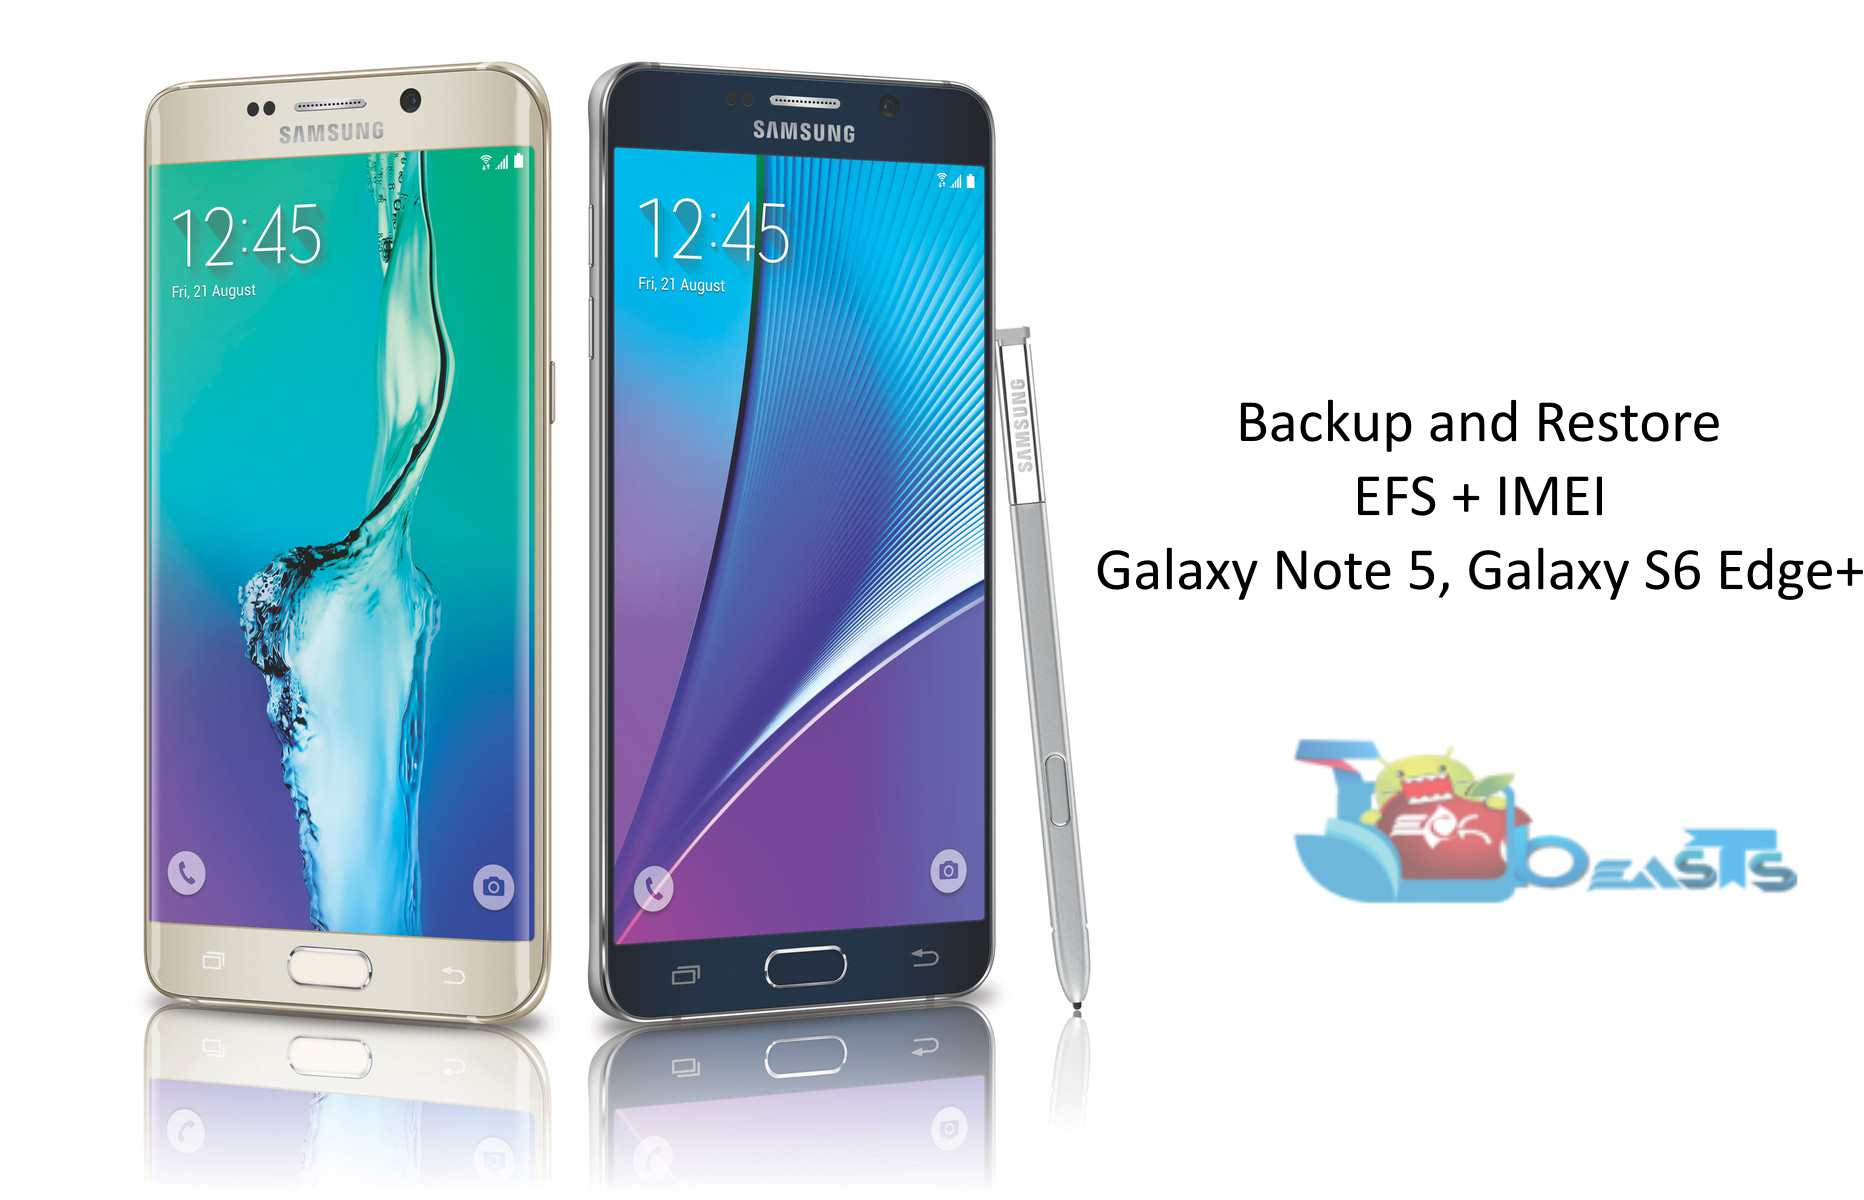 How to Backup and Restore EFS on Samsung Galaxy Note 5, S6